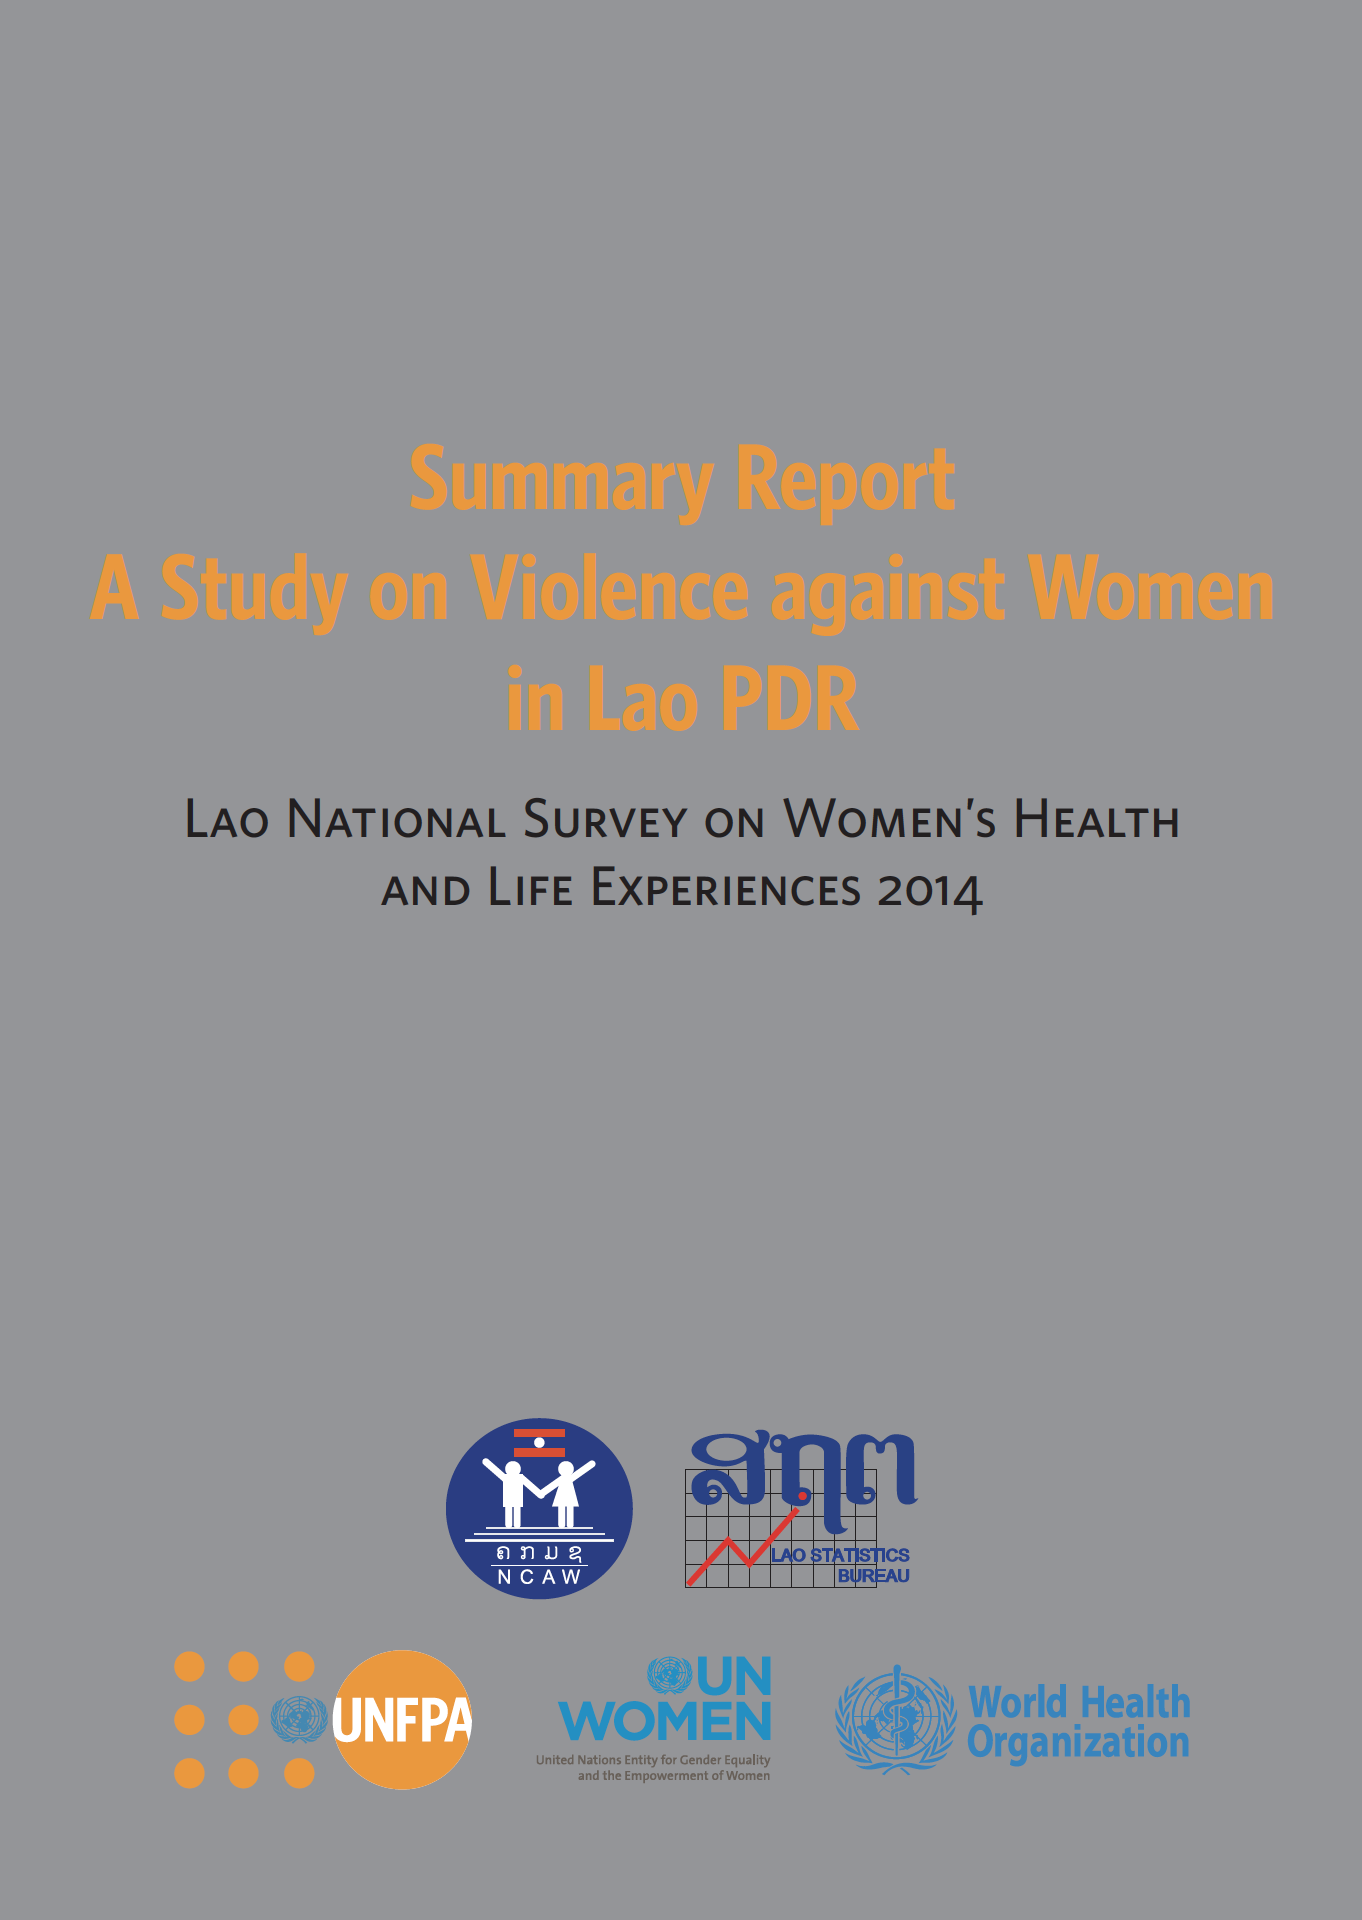 Cover of Lao PDR National Survey on Women's Health and Life Experiences 2014 (summary report)